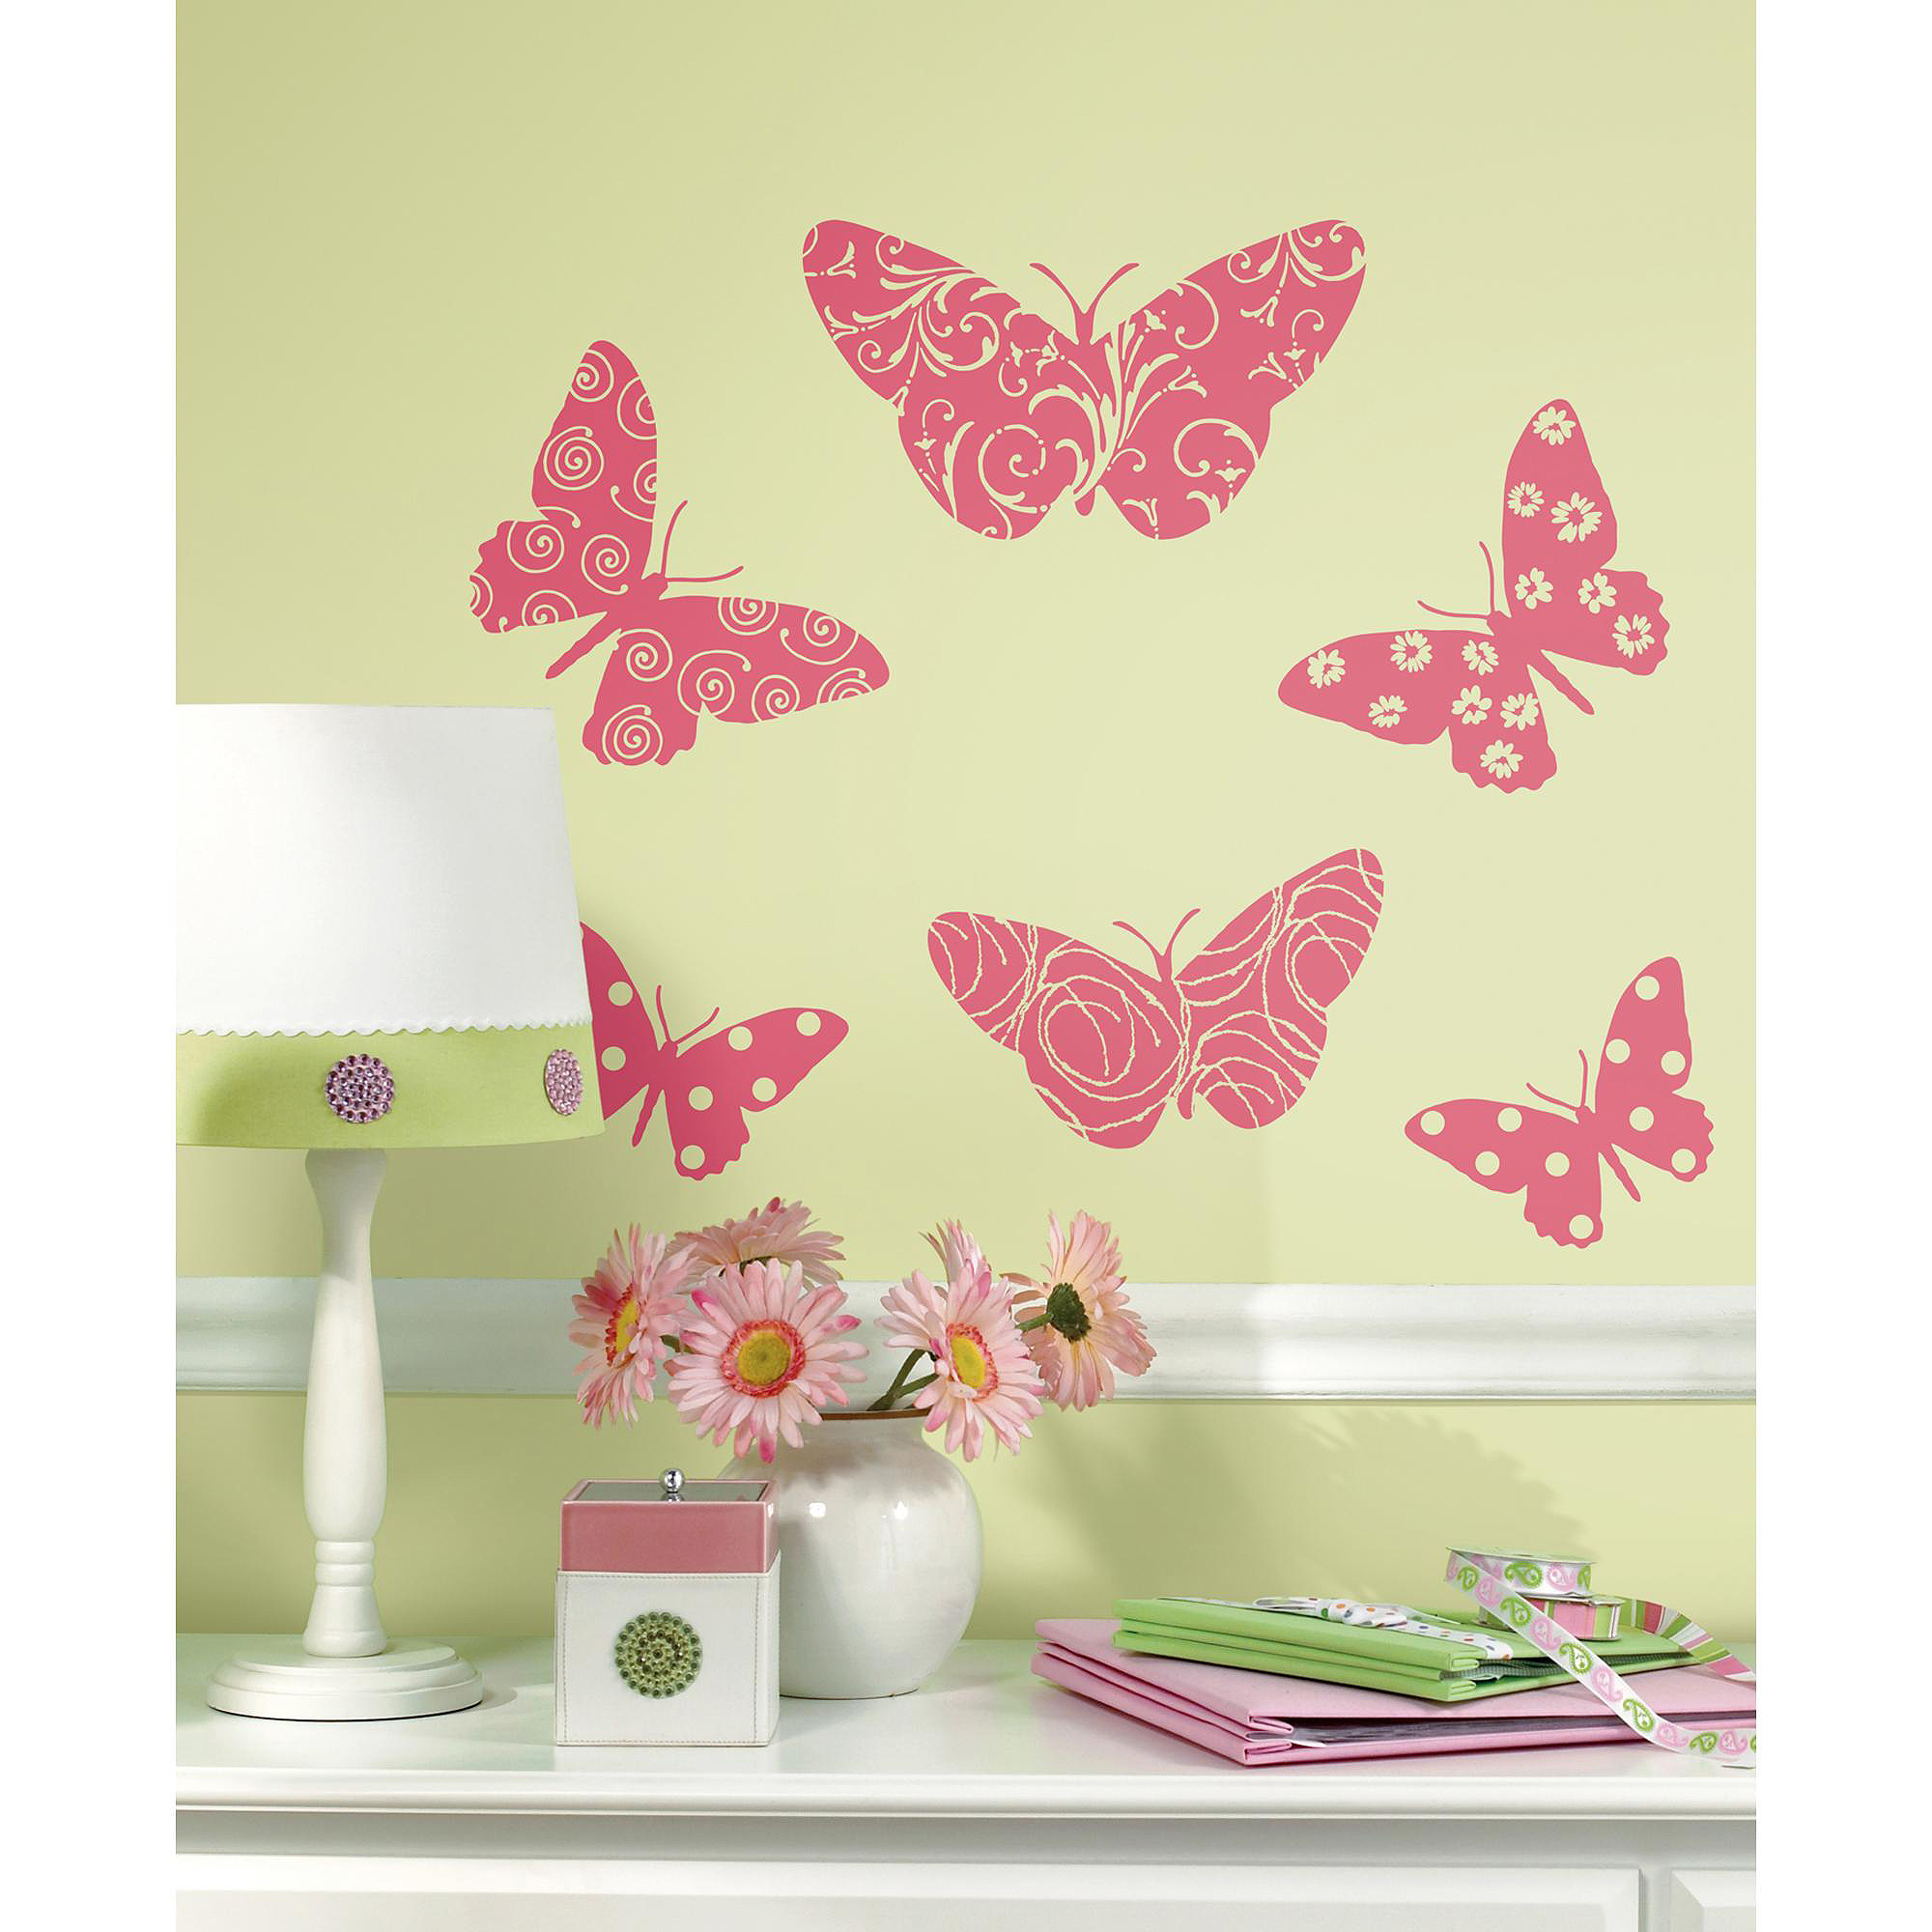 RoomMates Flocked Butterfly Peel and Stick Wall Decals